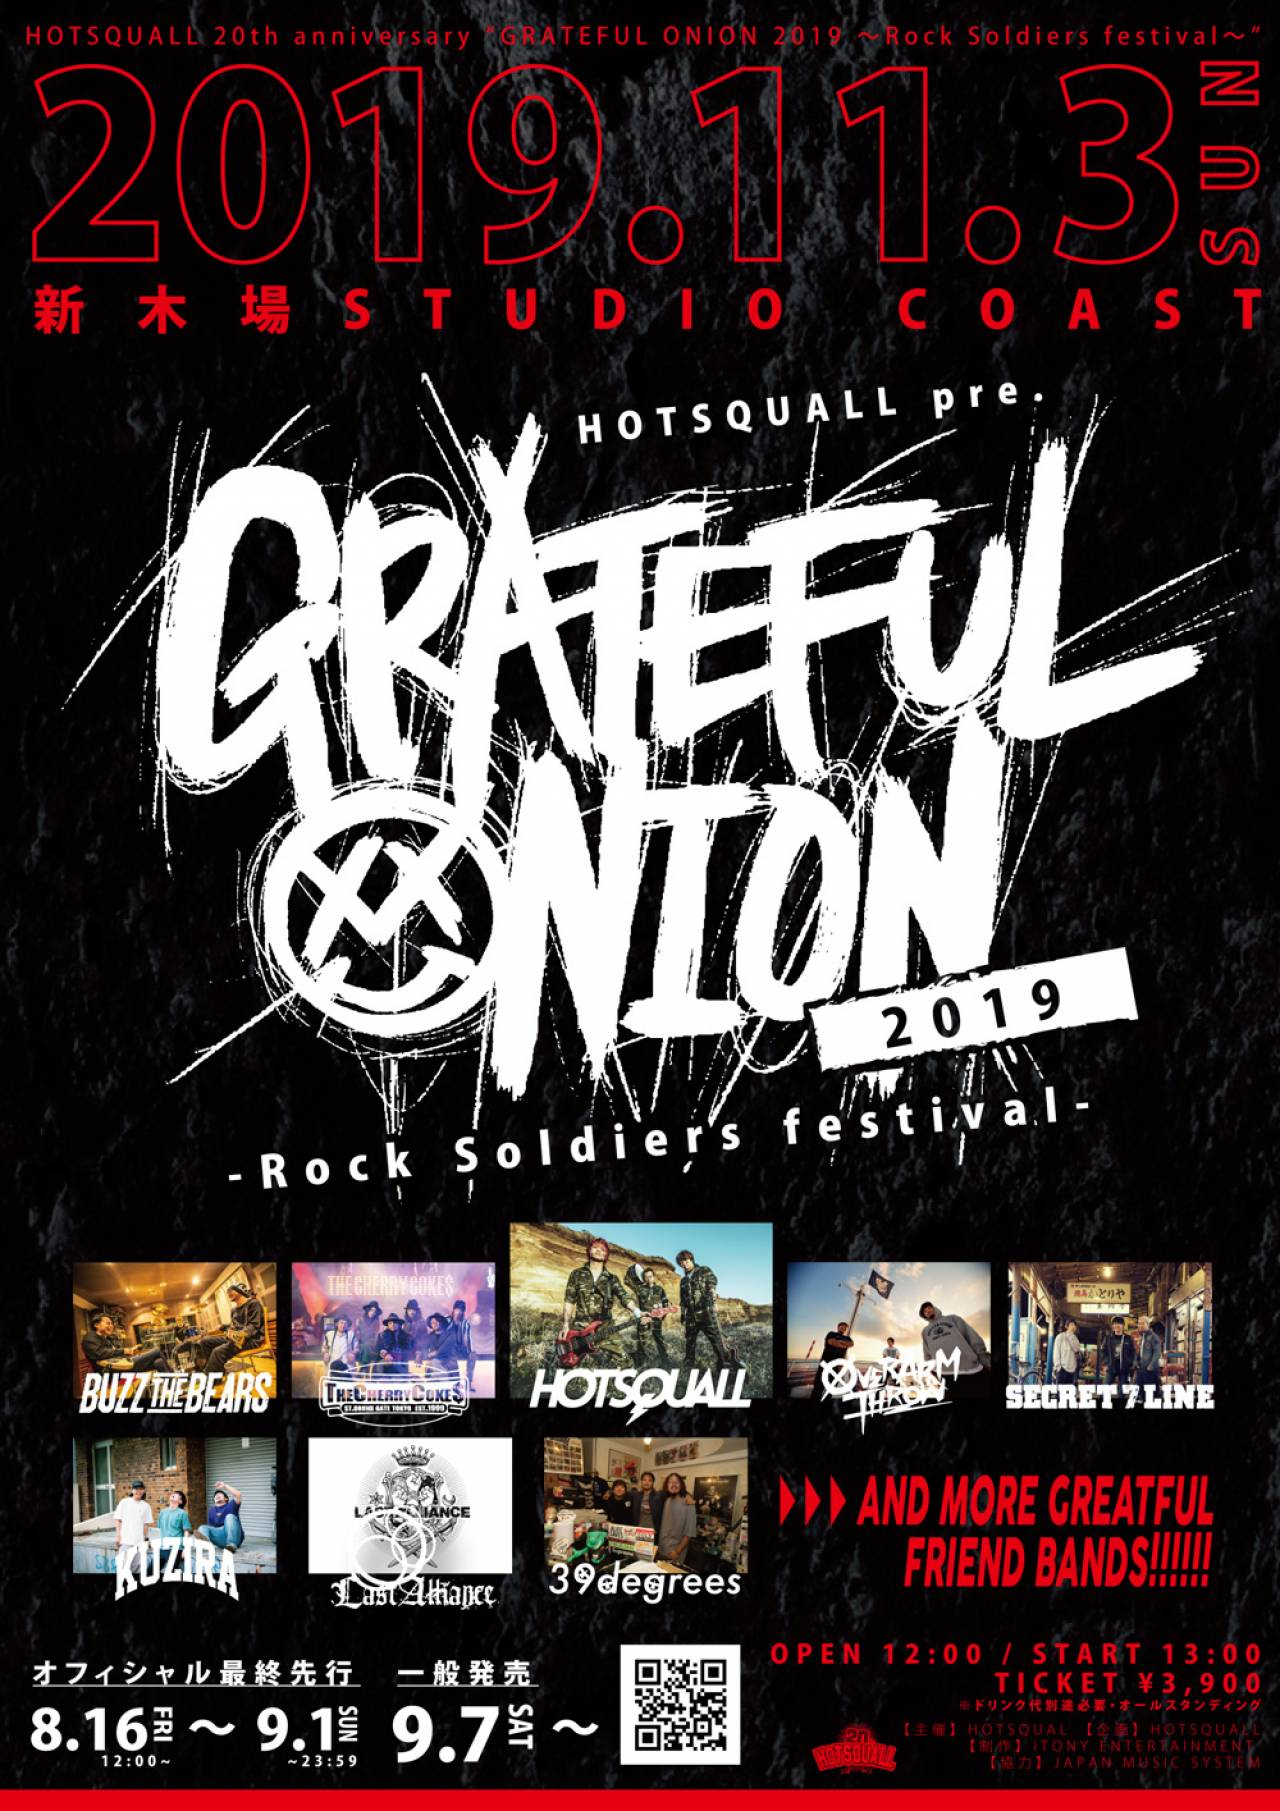 HOTSQUALL 20th anniversary GRATEFUL ONION 2019 〜Rock Soldiers festival〜